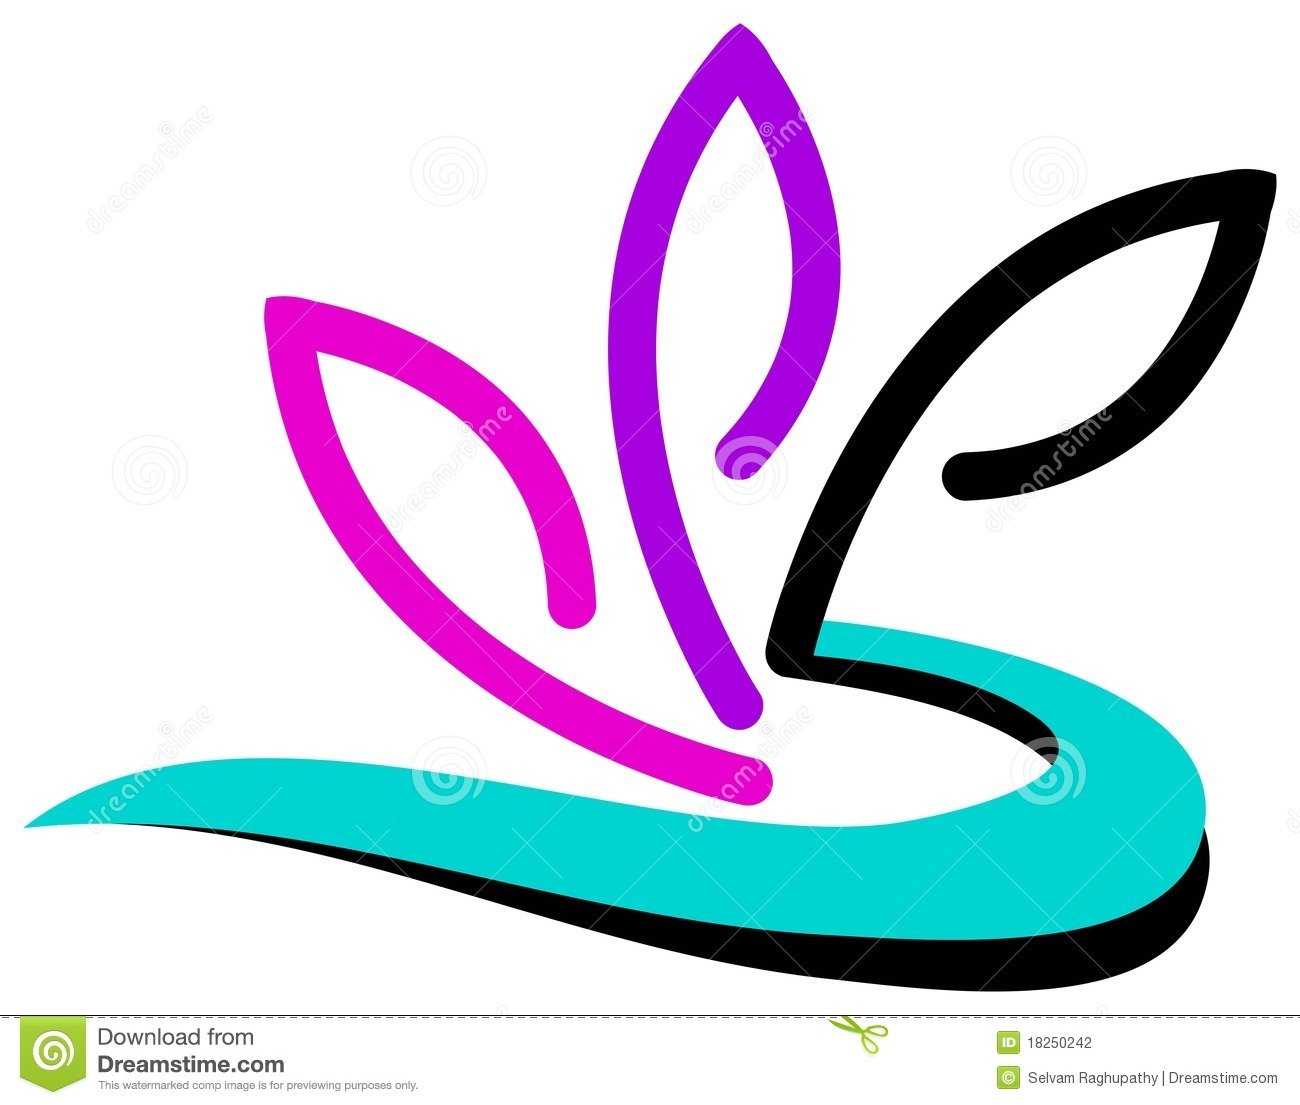 Flower logo design stock vector. Image of concept, floral ... - photo#28